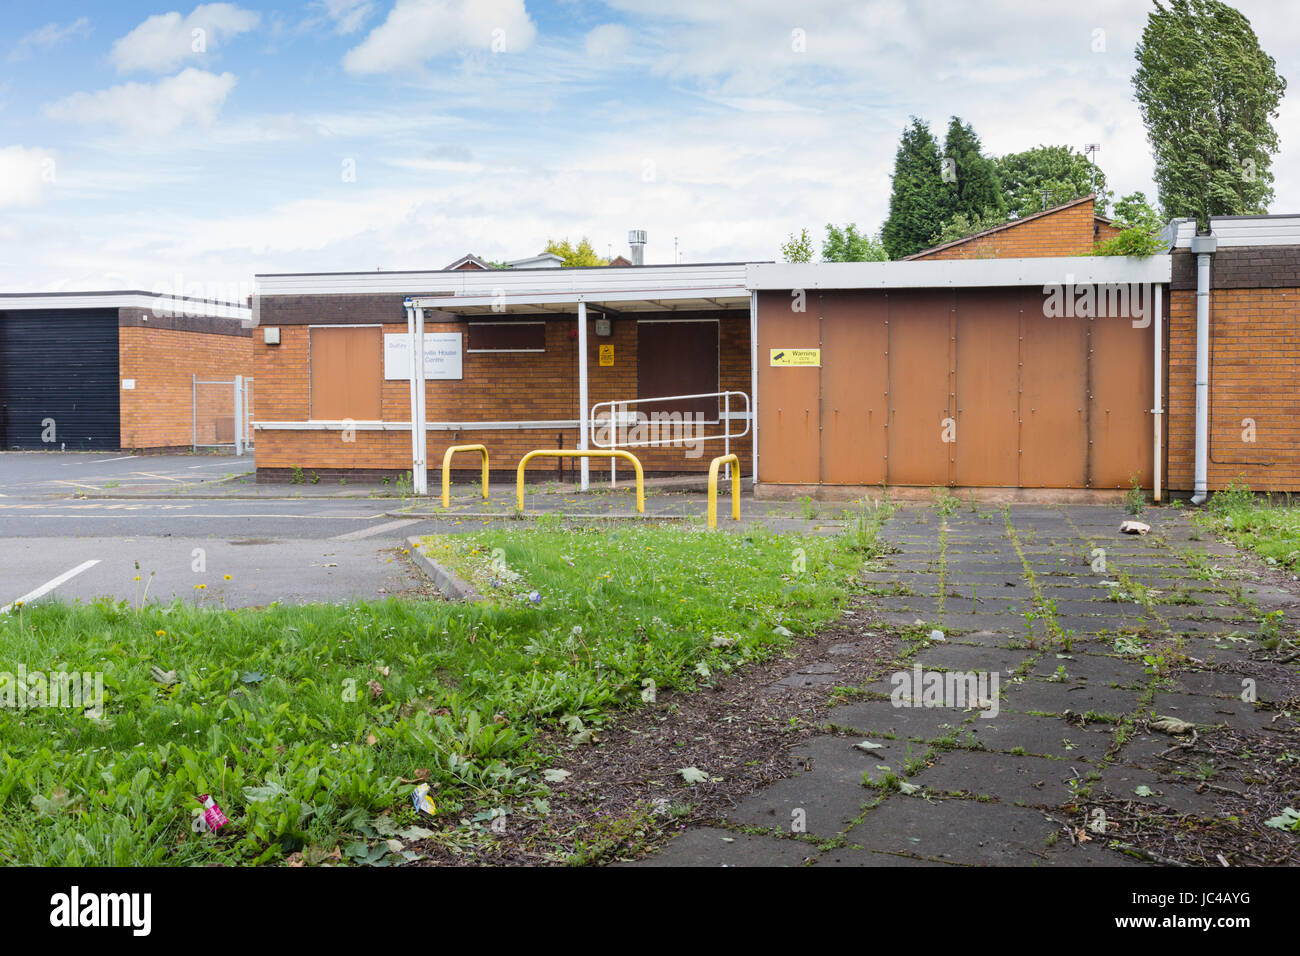 Day centre closed down, Coseley West Midlands Black country - Stock Image